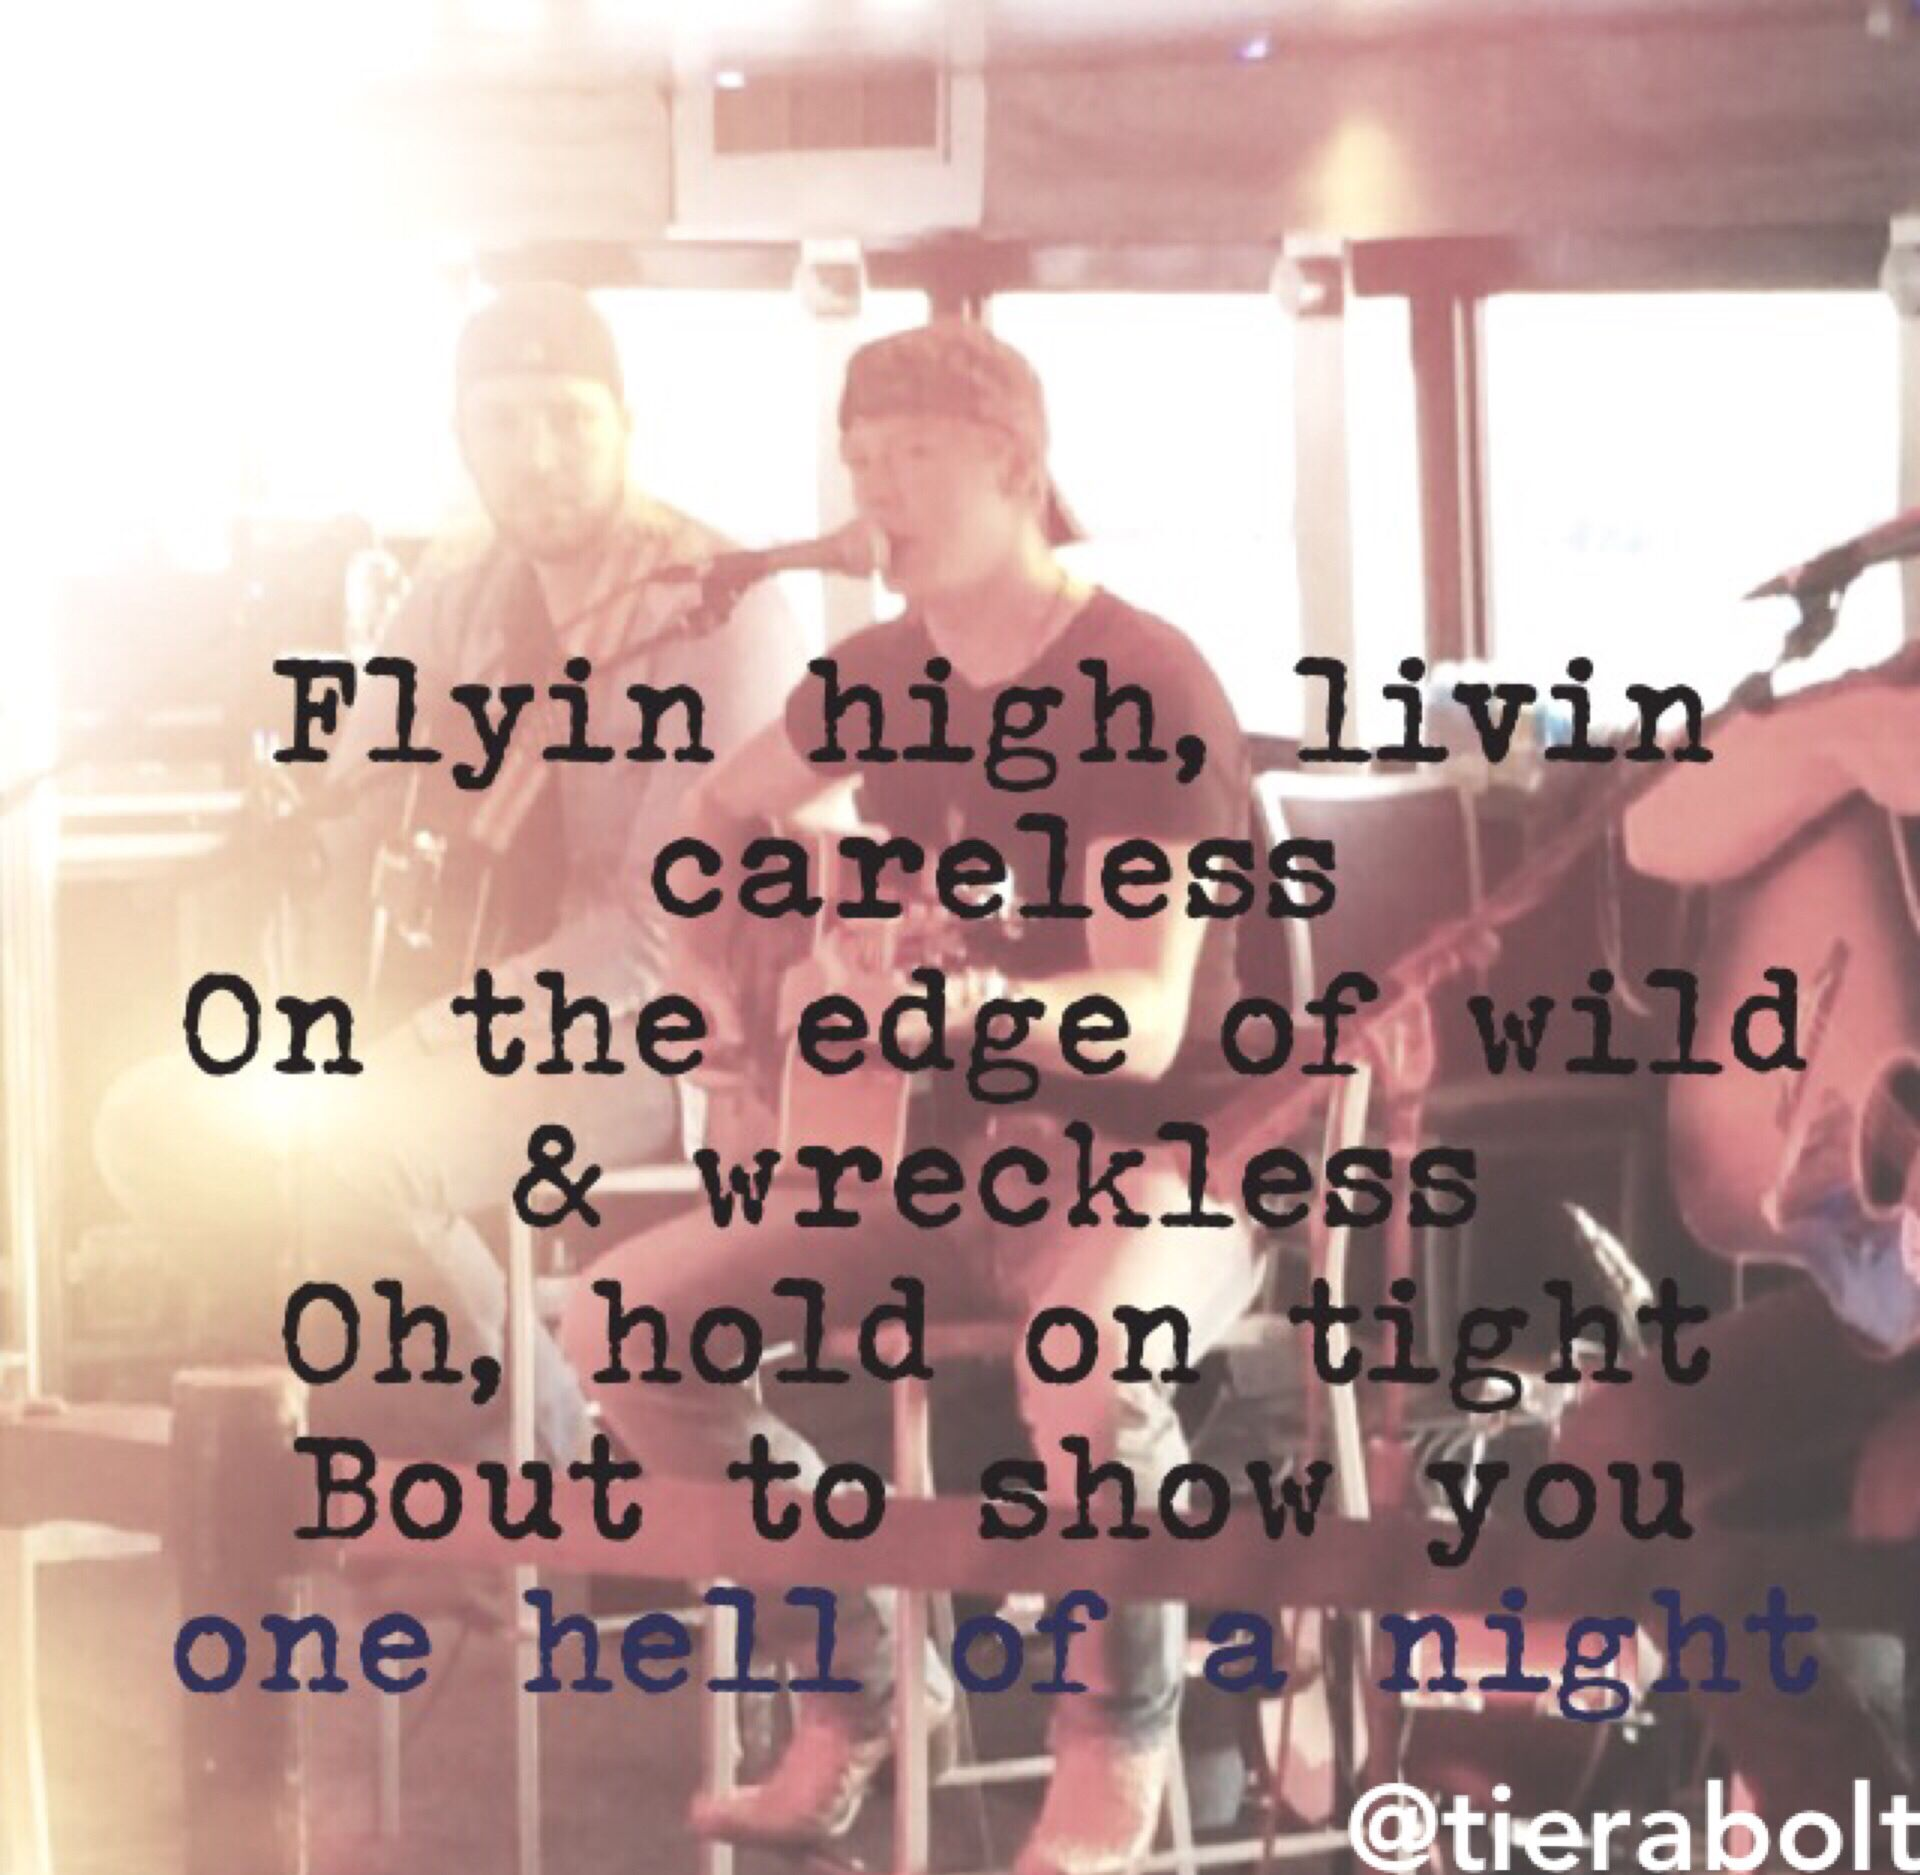 Adam sanders- one hell of a night #lyrics #country #newmusic this one will be track #1 on dustin lynch's #whereitsat album out sept 9!